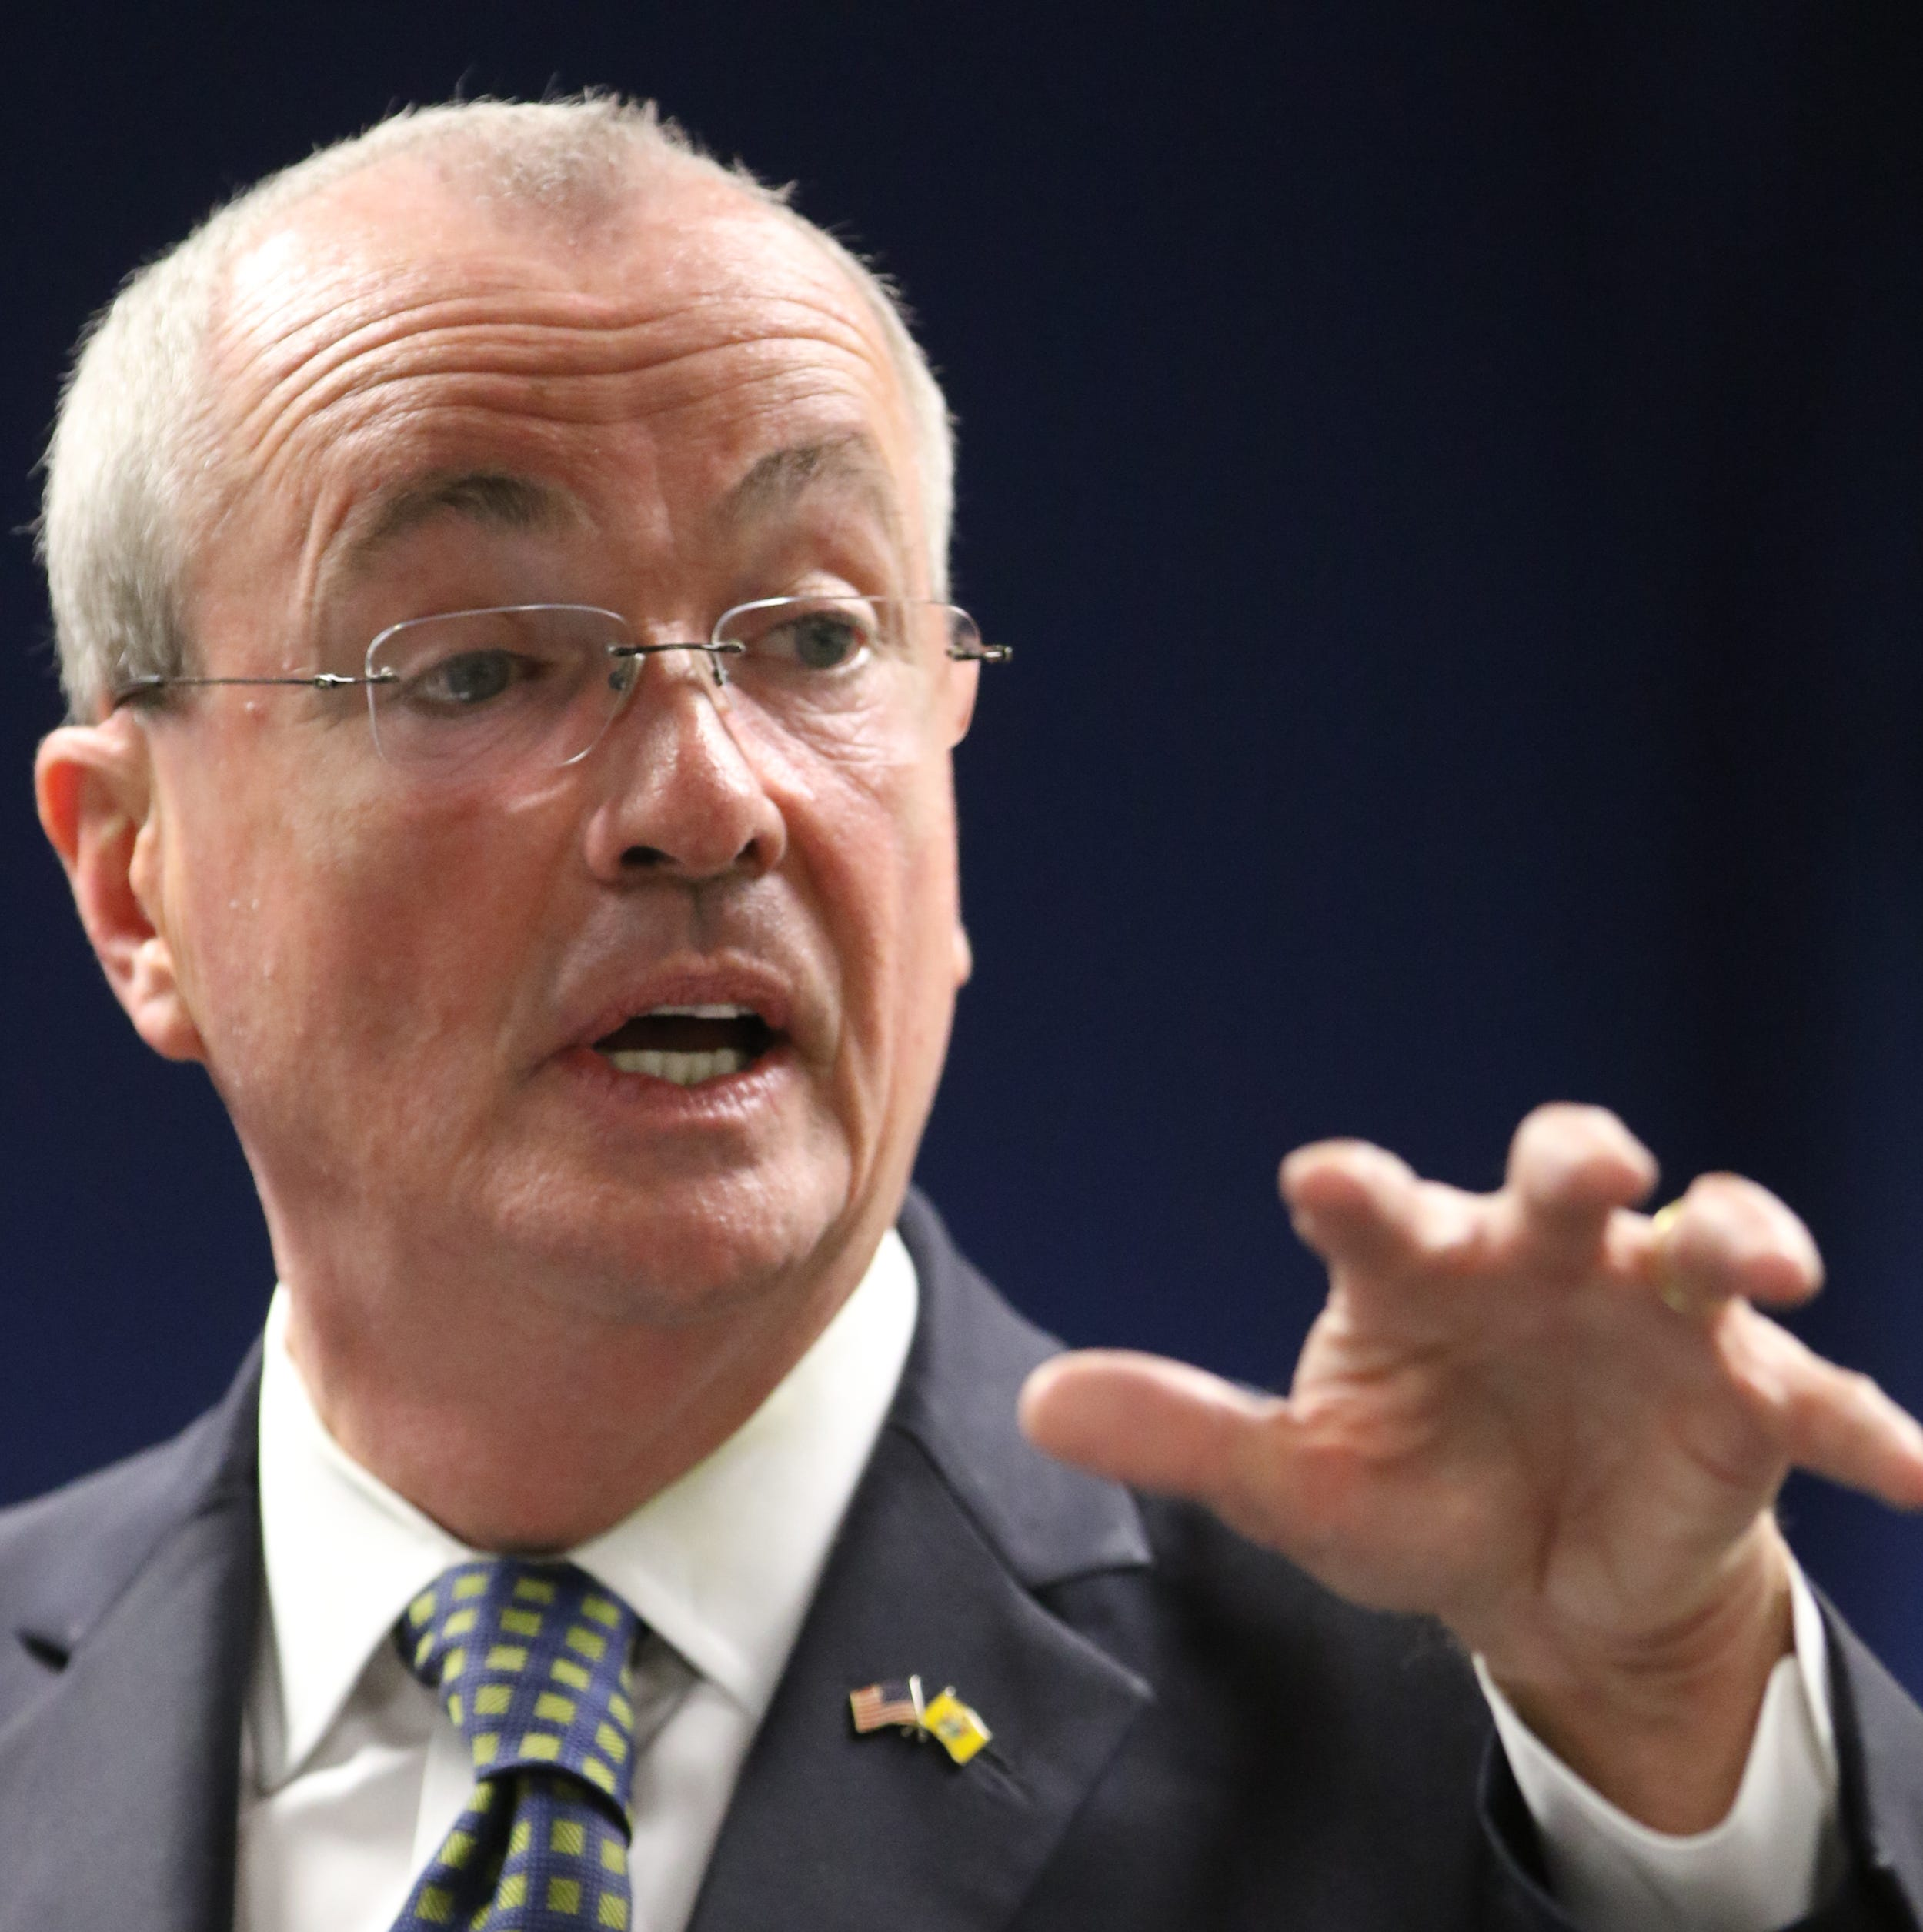 Gov. Phil Murphy spoke at a press conference today in Newark.  The original topic was supposed to be his upcoming trip to Germany and Israel.  However, the dominant topic asked by members of the press was the  alleged sexual assault by someone on his team.  Murphy said the allegations made him sick to his stomach and that he wants New Jersey to be the gold standard on how victims are treated.  He added that an independent investigation will be put in motion to get to the bottom of what occurred.  Monday, October 15, 2018